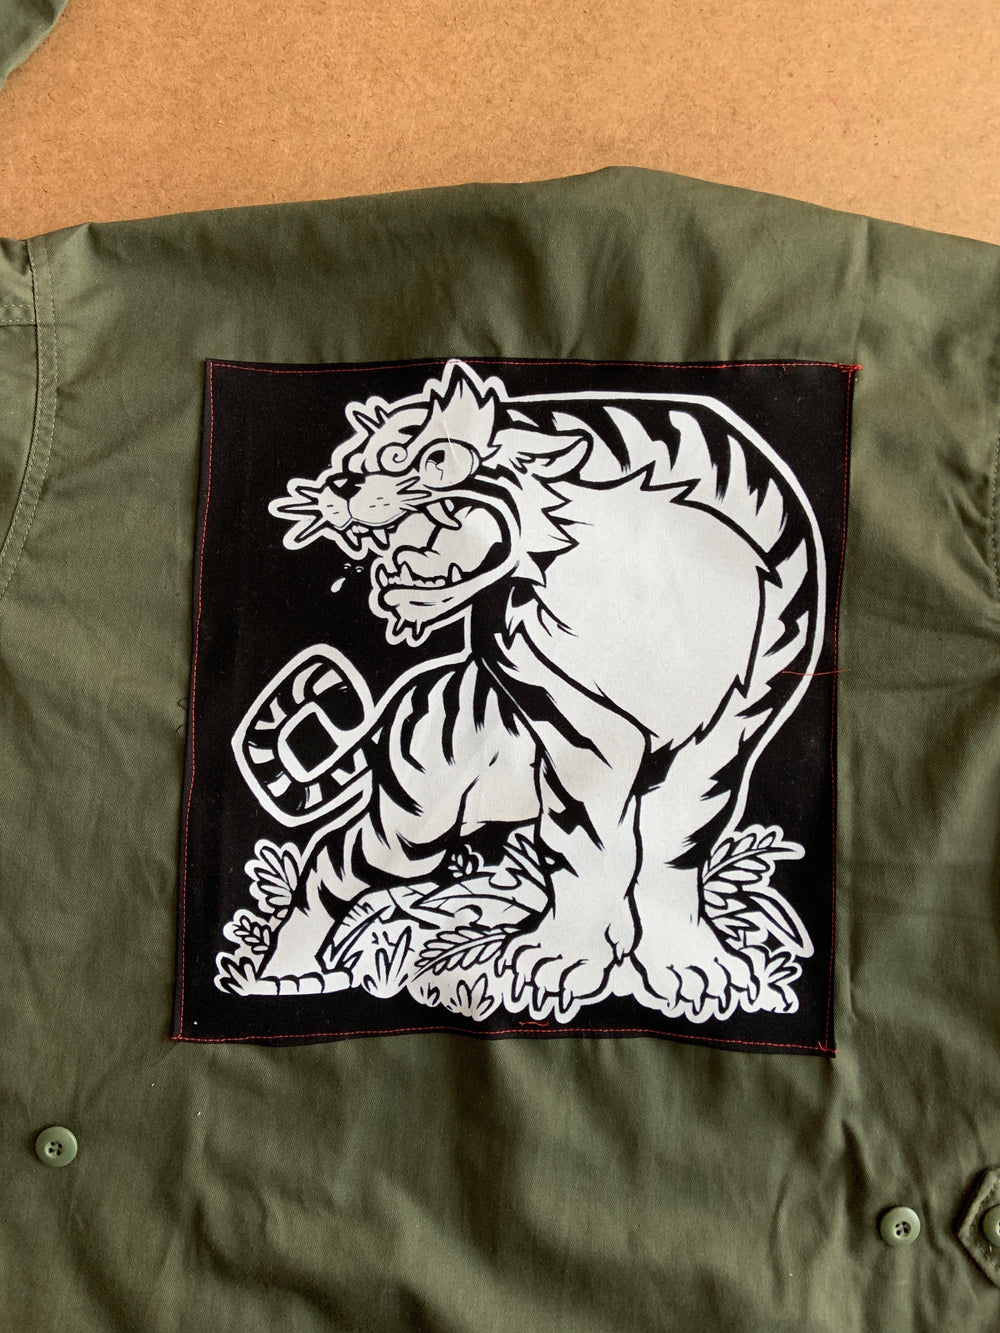 Levitzo- Crouching Tiger Green Military Jacket: White Print on Black